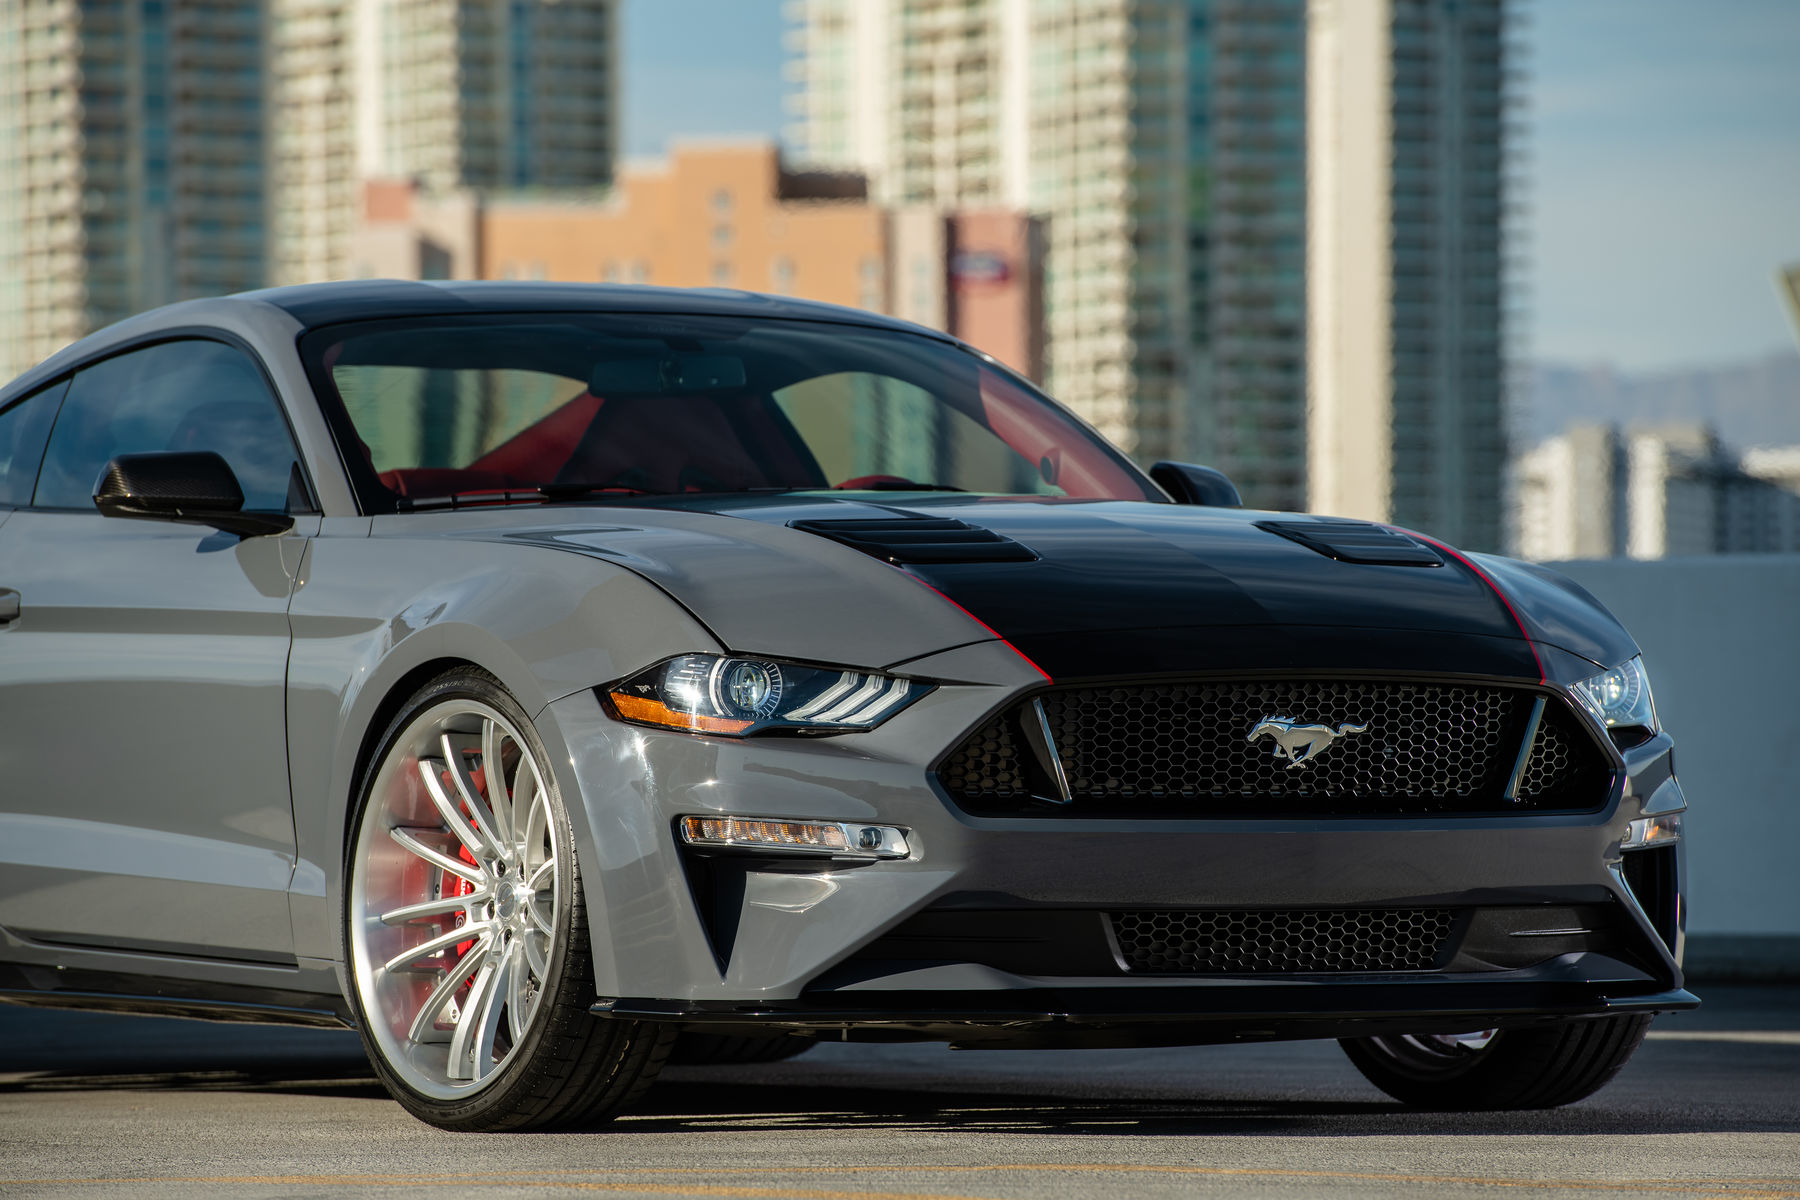 2019 ford mustang gt fastback by cgs motorsports vegas fordsema